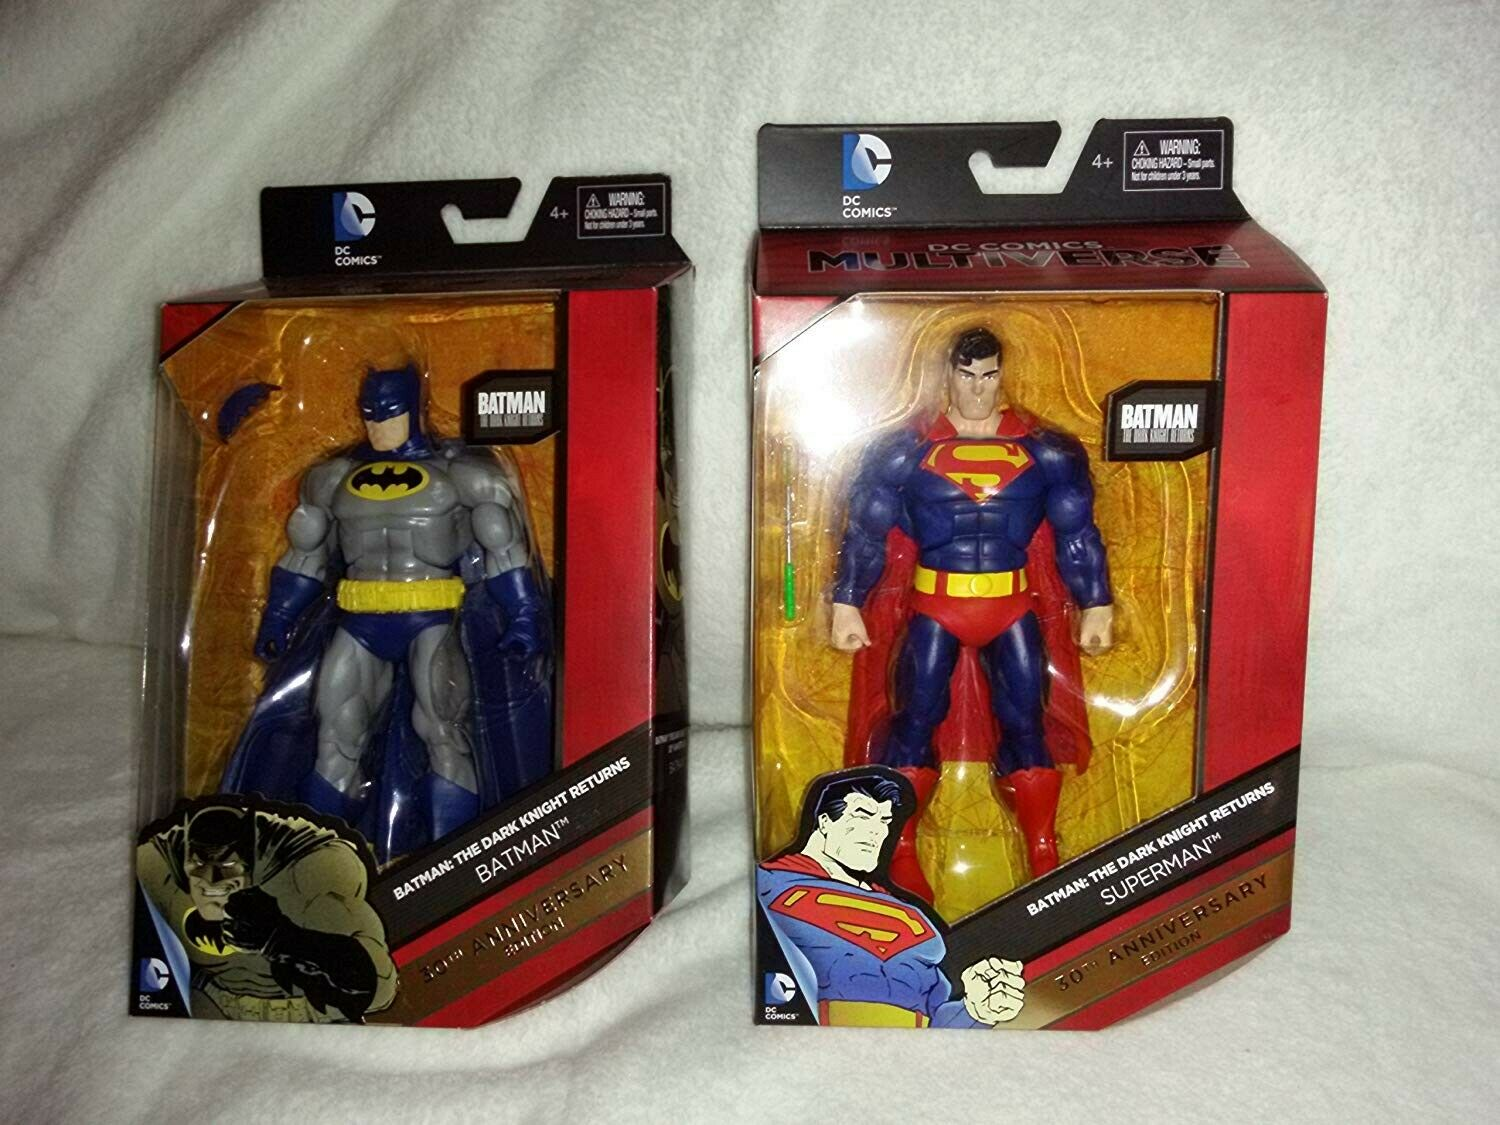 30th Anniversary Special Collectors Edition Batman & Superman Action Figures